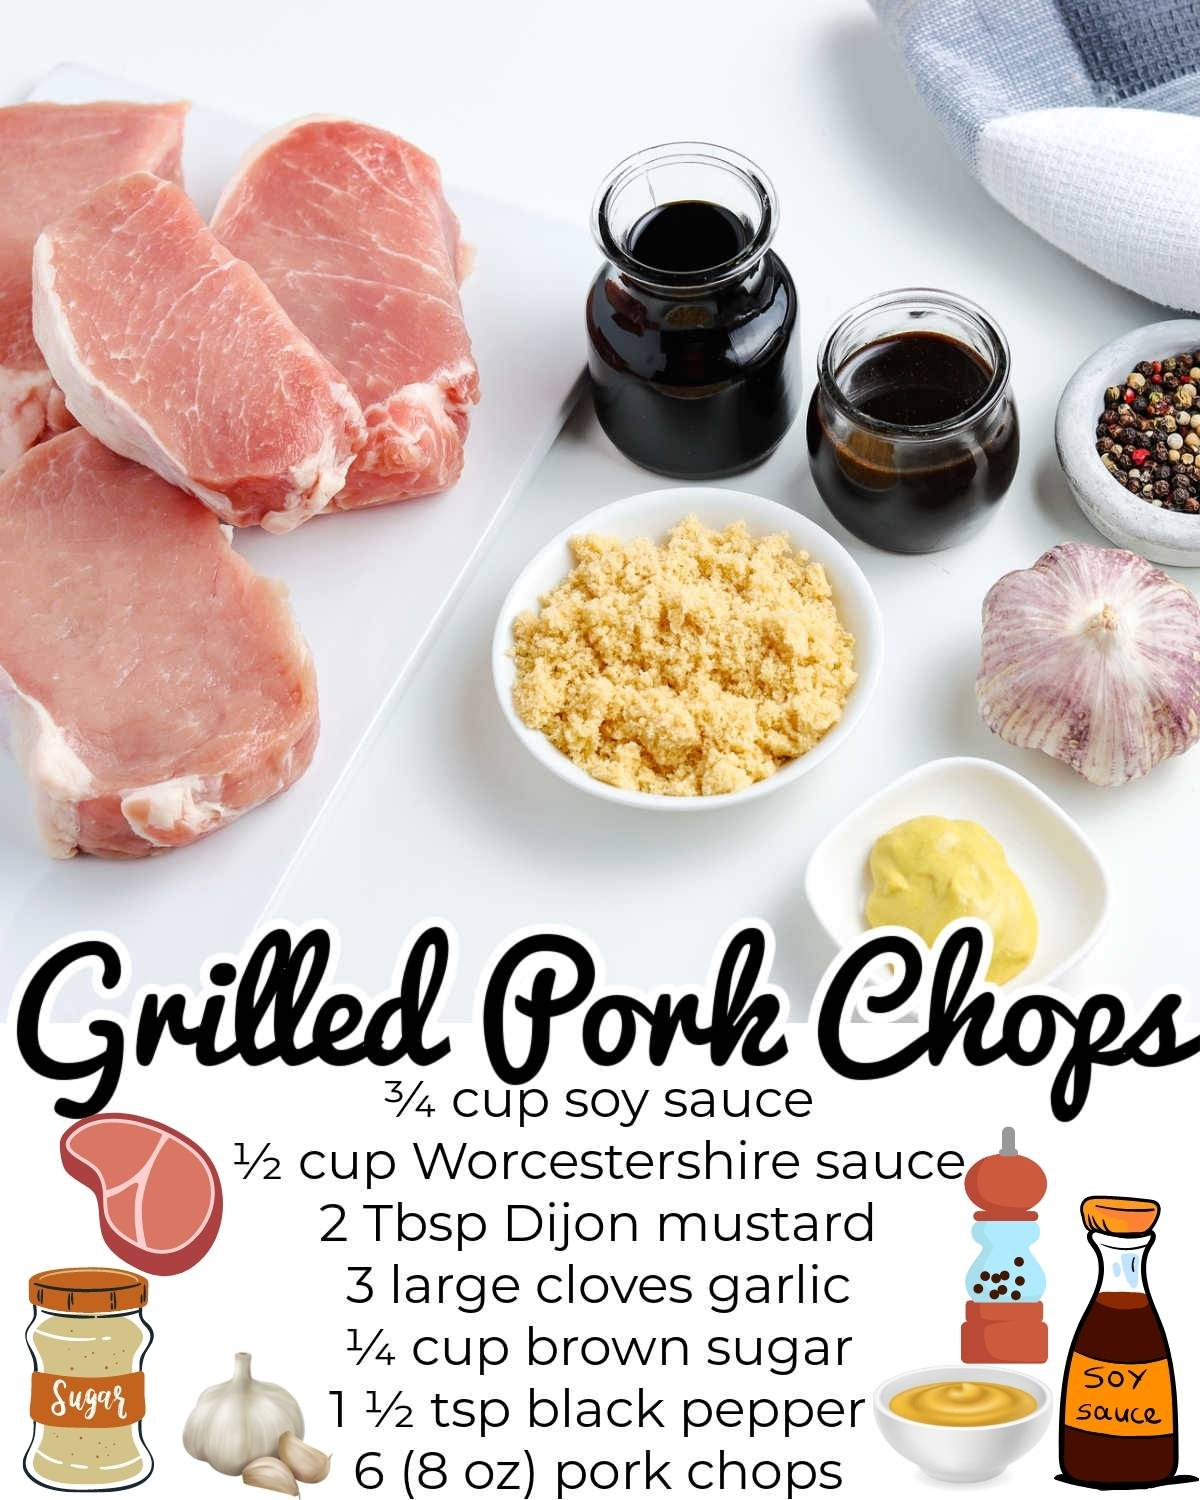 All of the ingredients needed to make this grilled pork chops recipe.